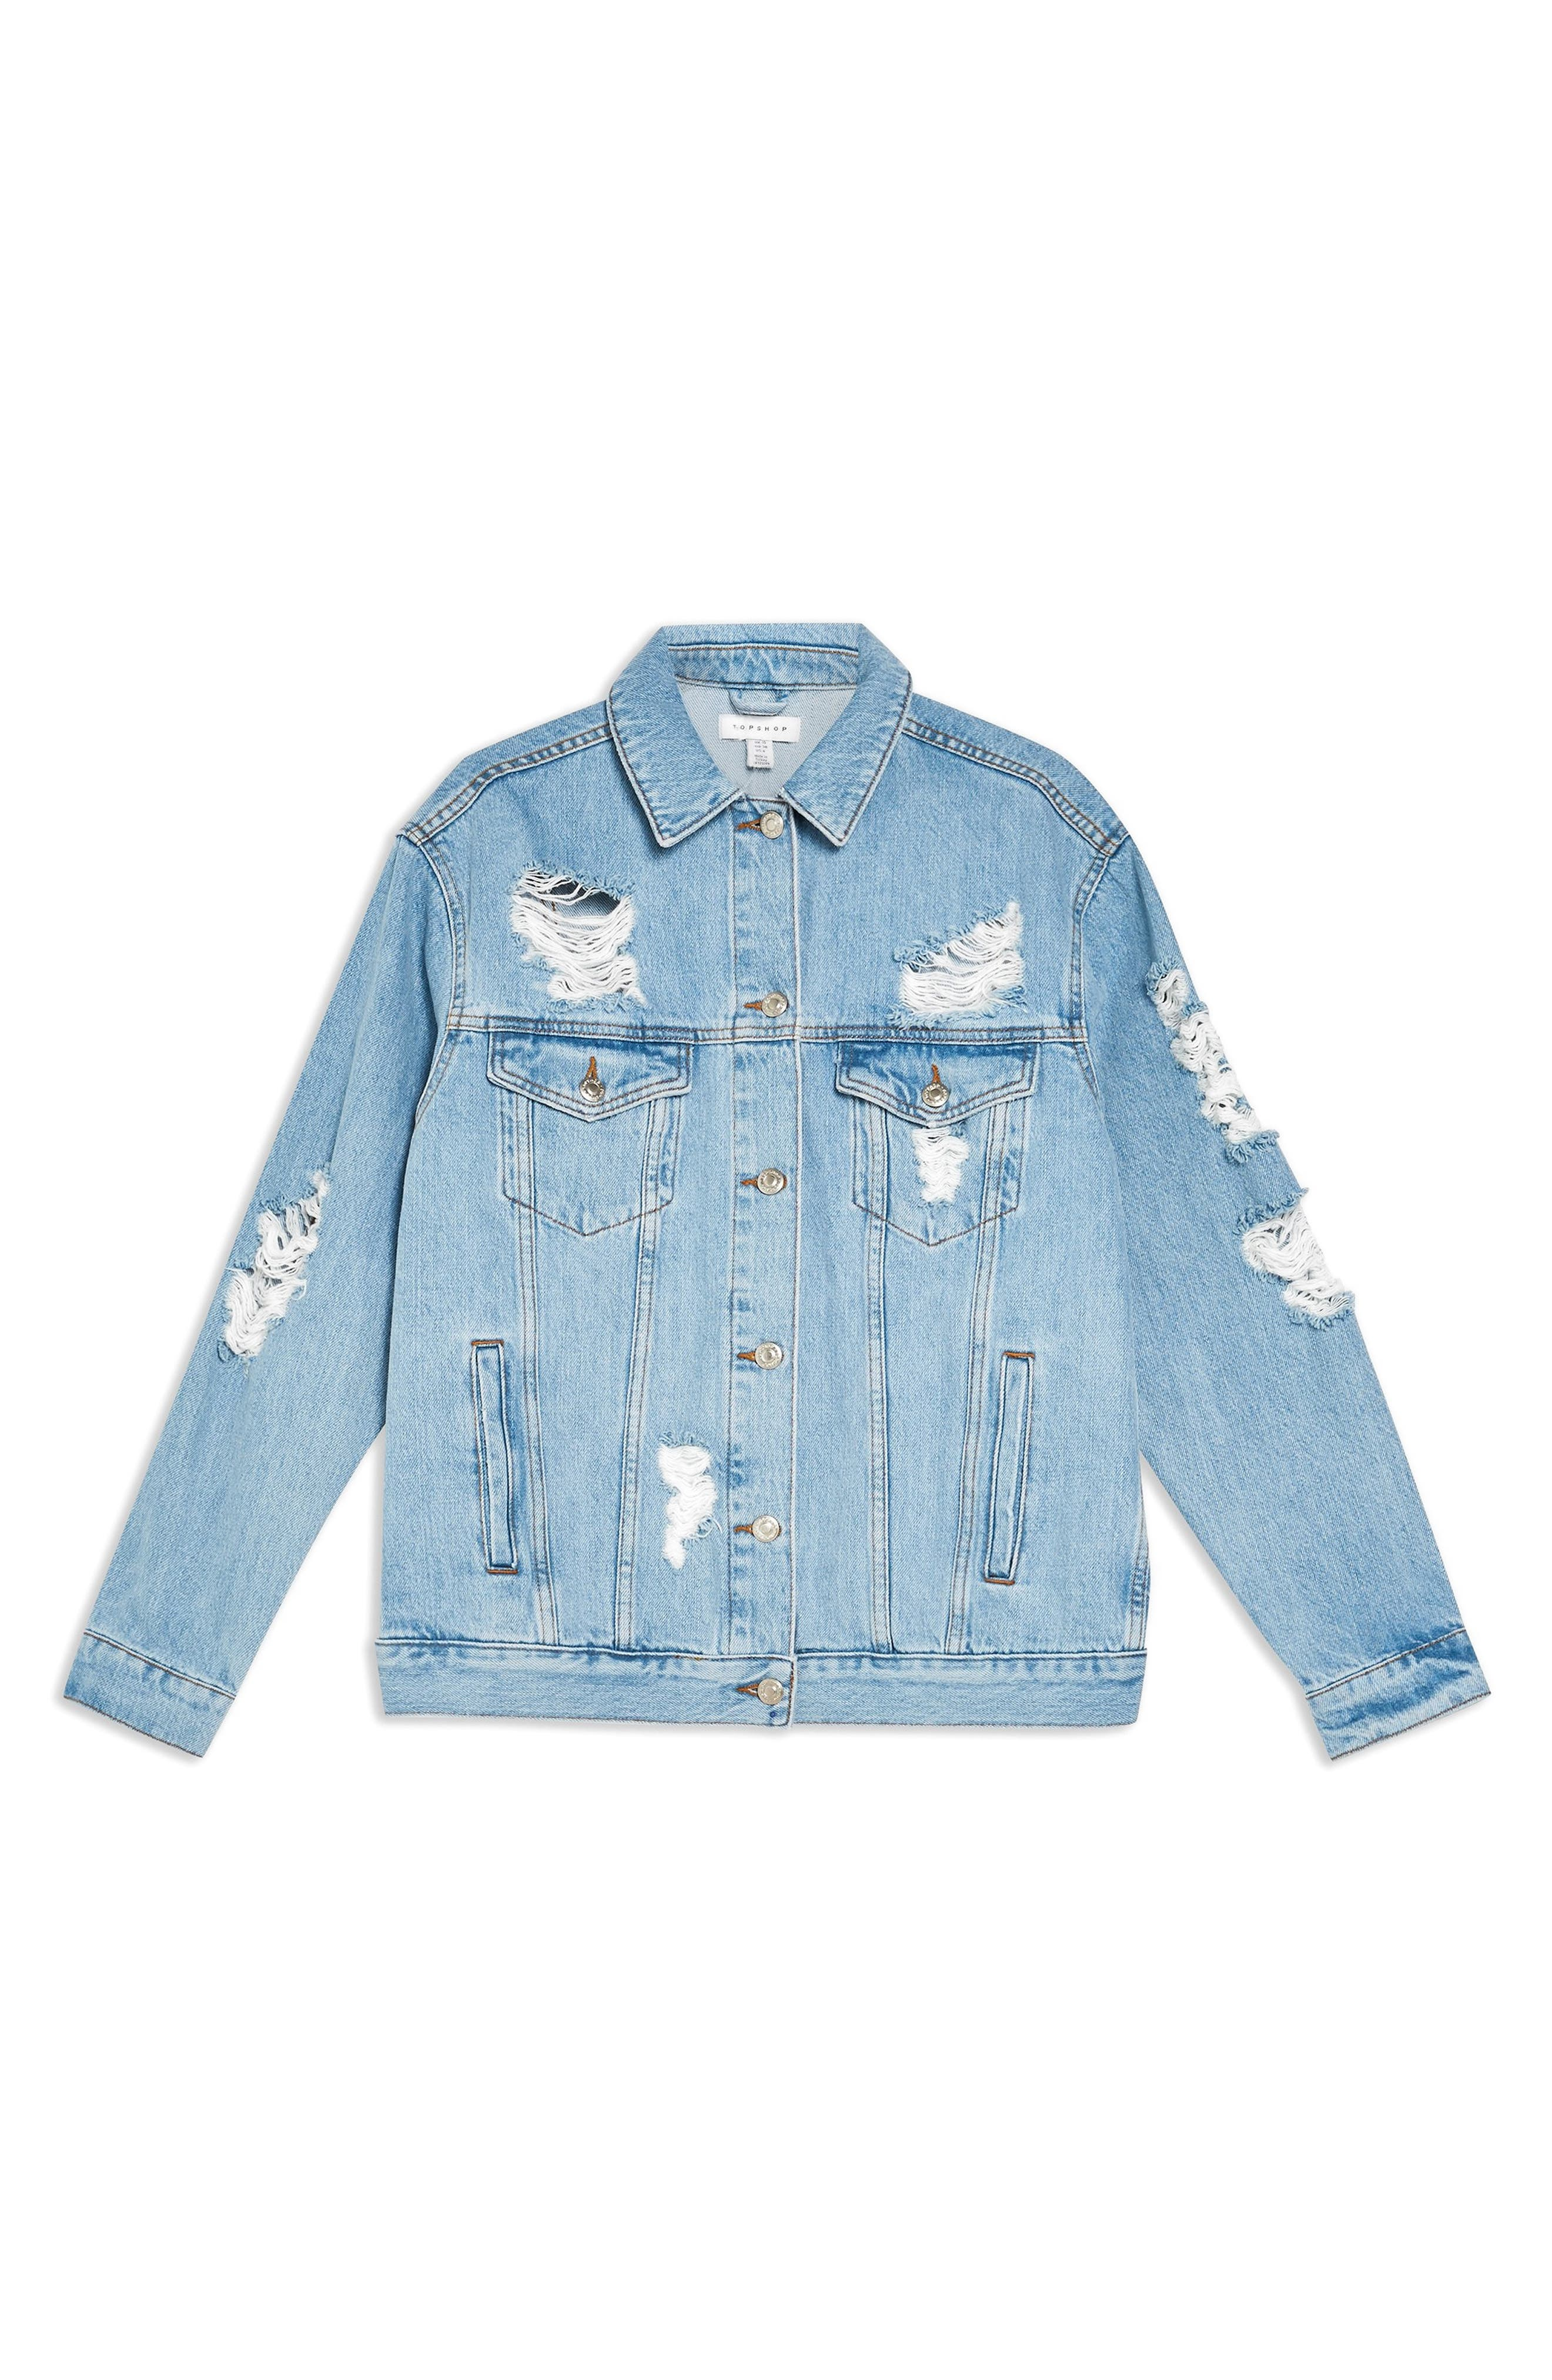 TOPSHOP, Ripped Denim Jacket, Alternate thumbnail 4, color, MID DENIM